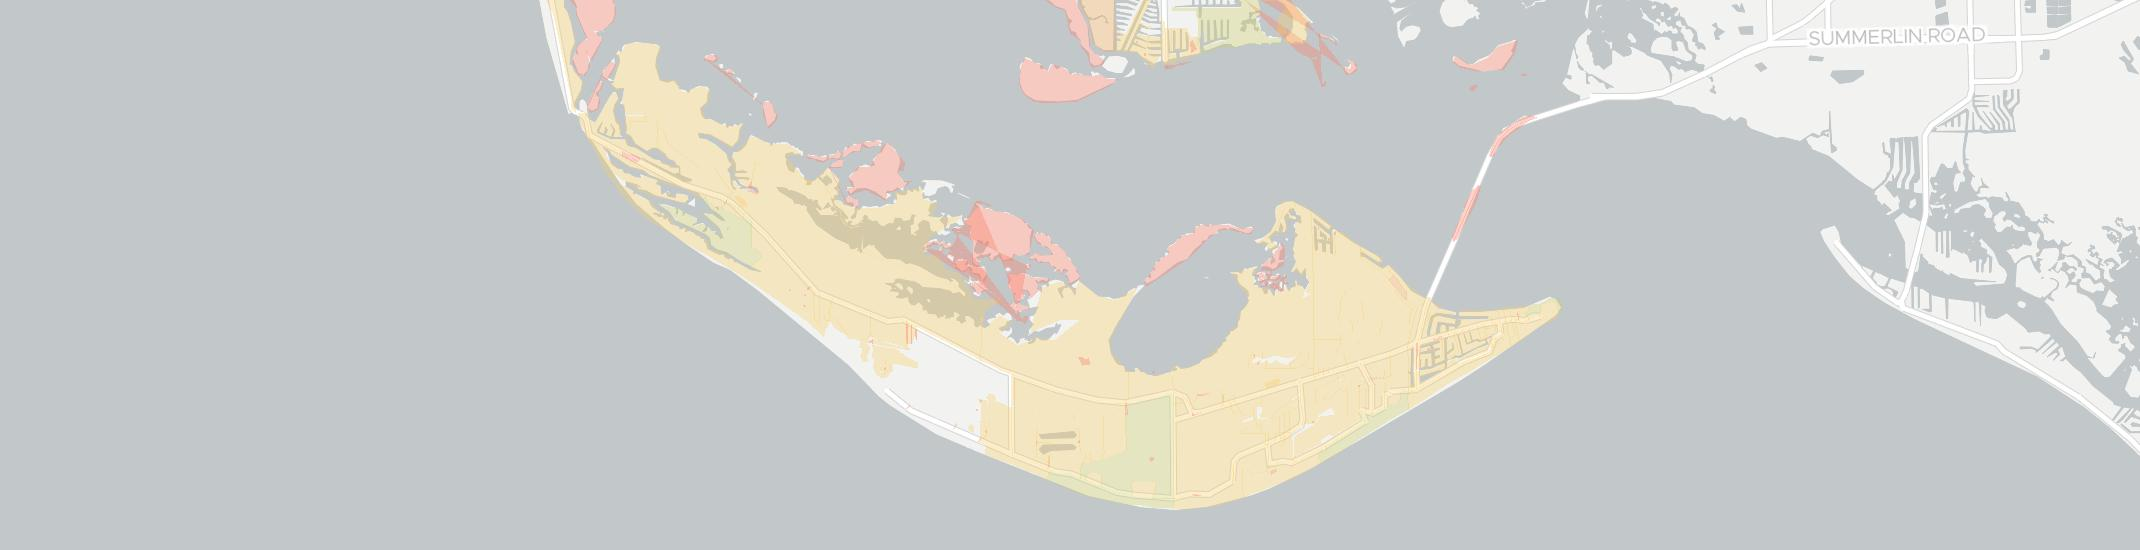 Sanibel Internet Competition Map. Click for interactive map.